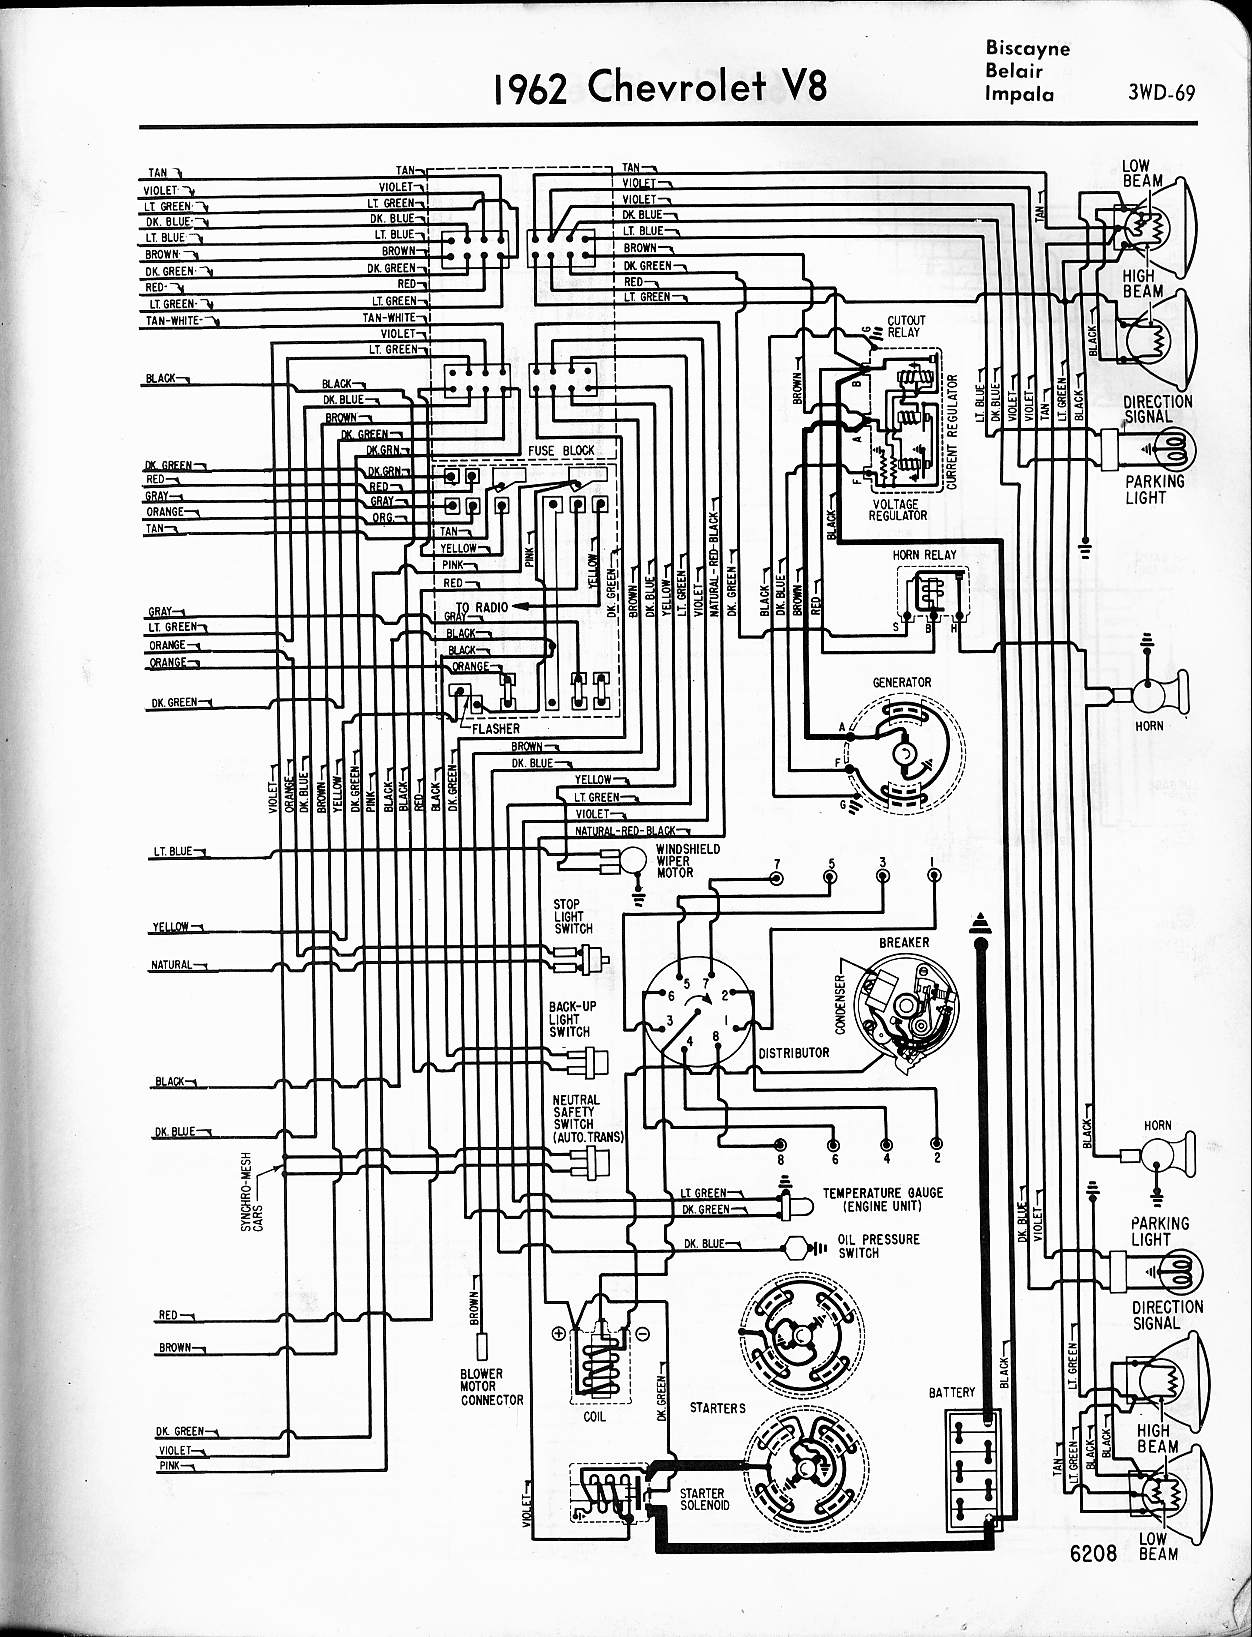 2008 impala fuse diagram 65 impala fuse diagram i have a 62 chevy impala and am converting the generator ...